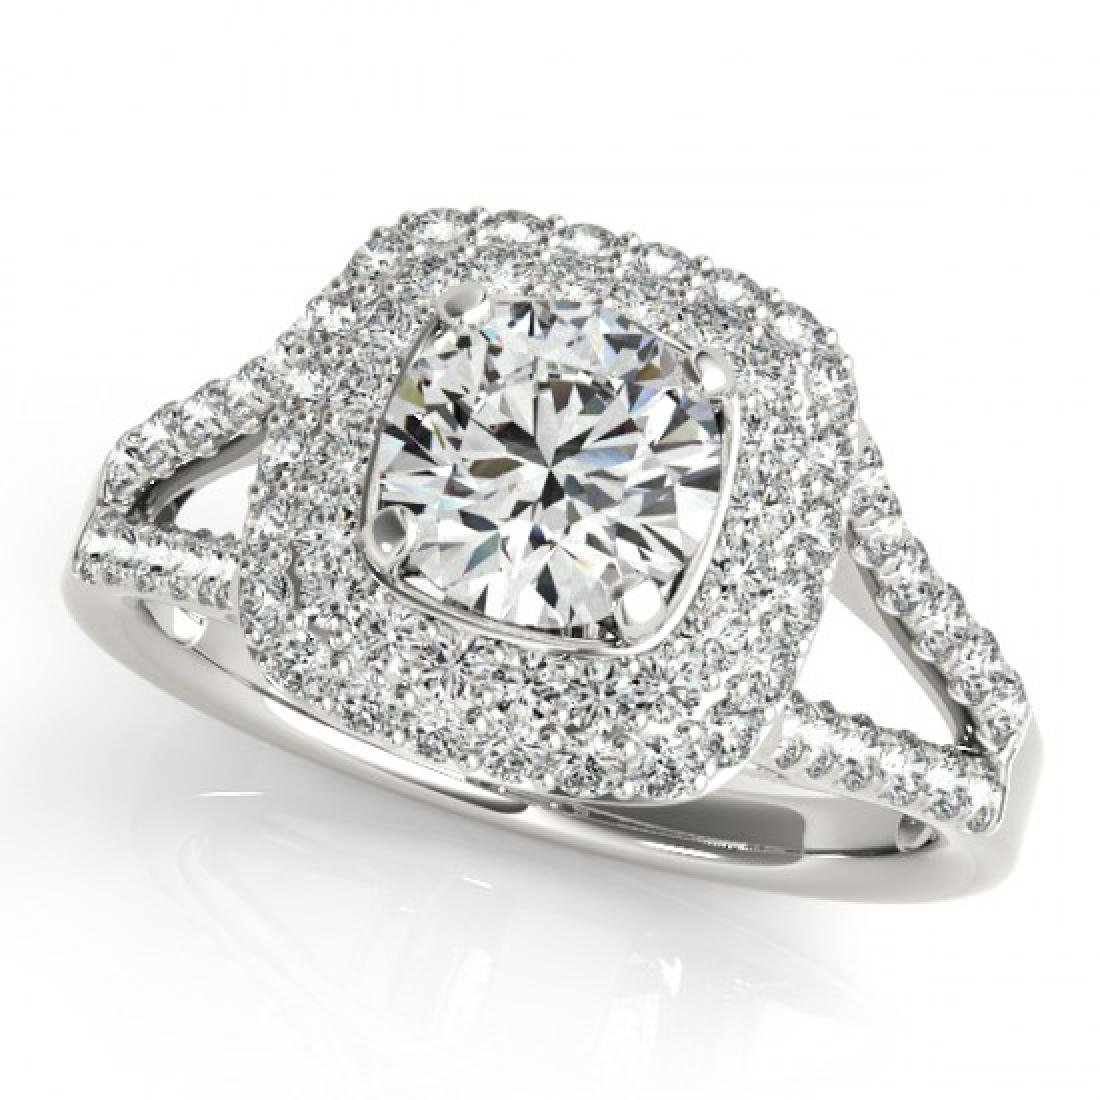 1.53 CTW Certified VS/SI Diamond Solitaire Halo Ring